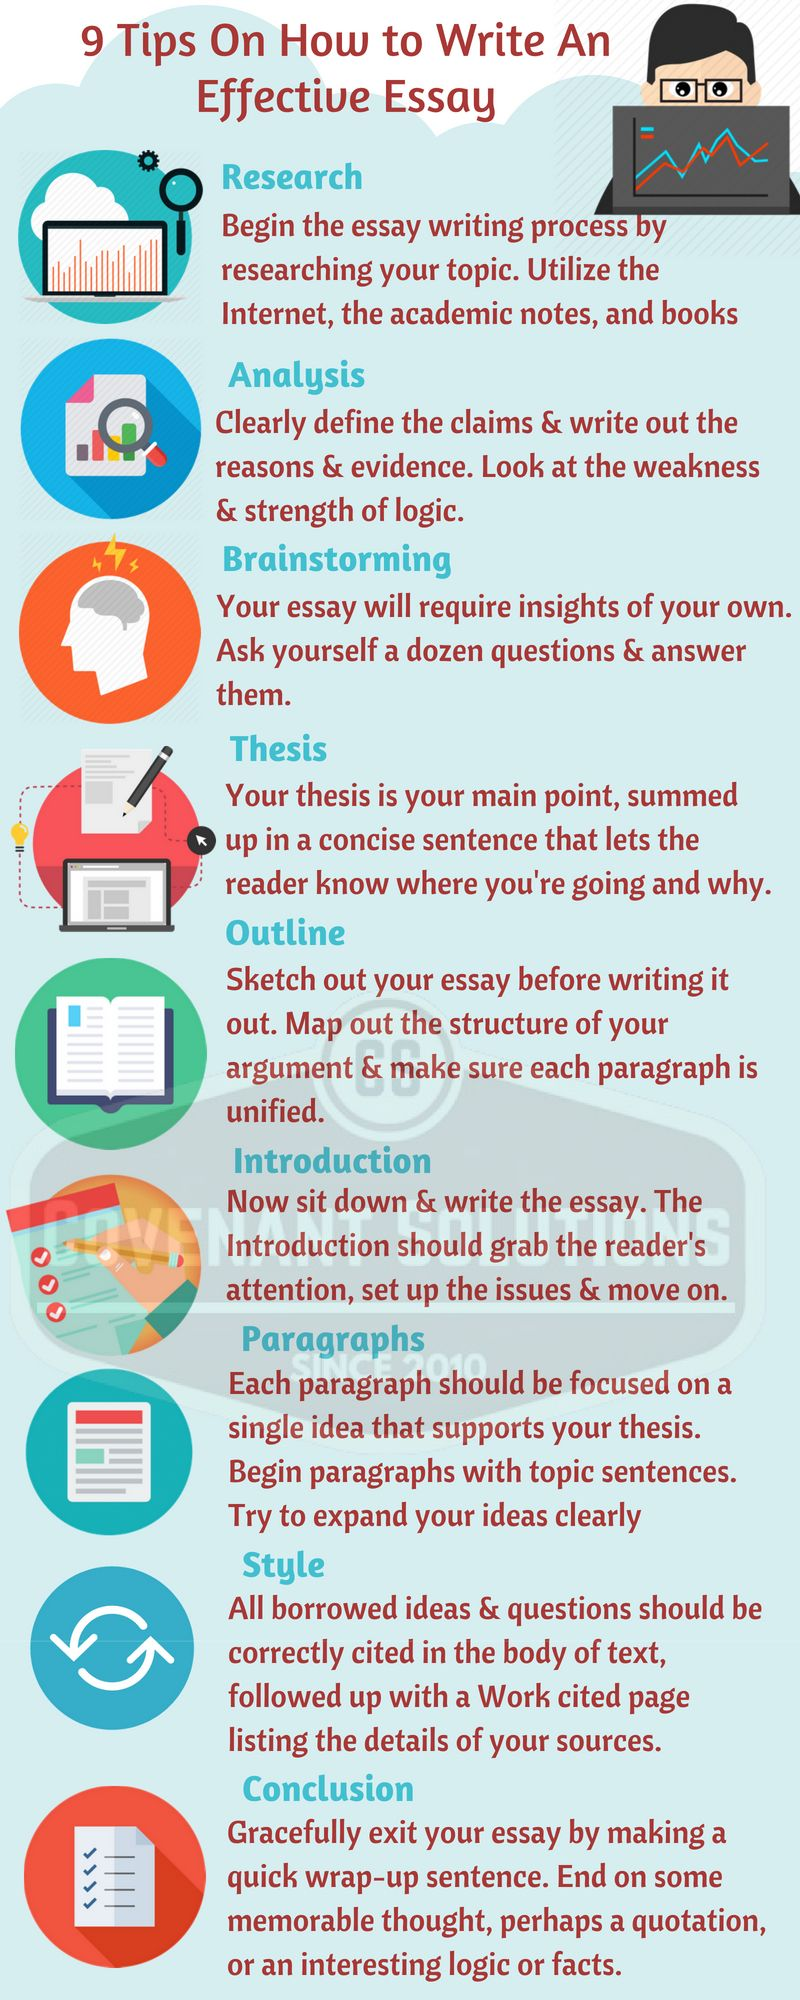 Tips on Writing an Effective Essay.  Essay writing, Dissertation